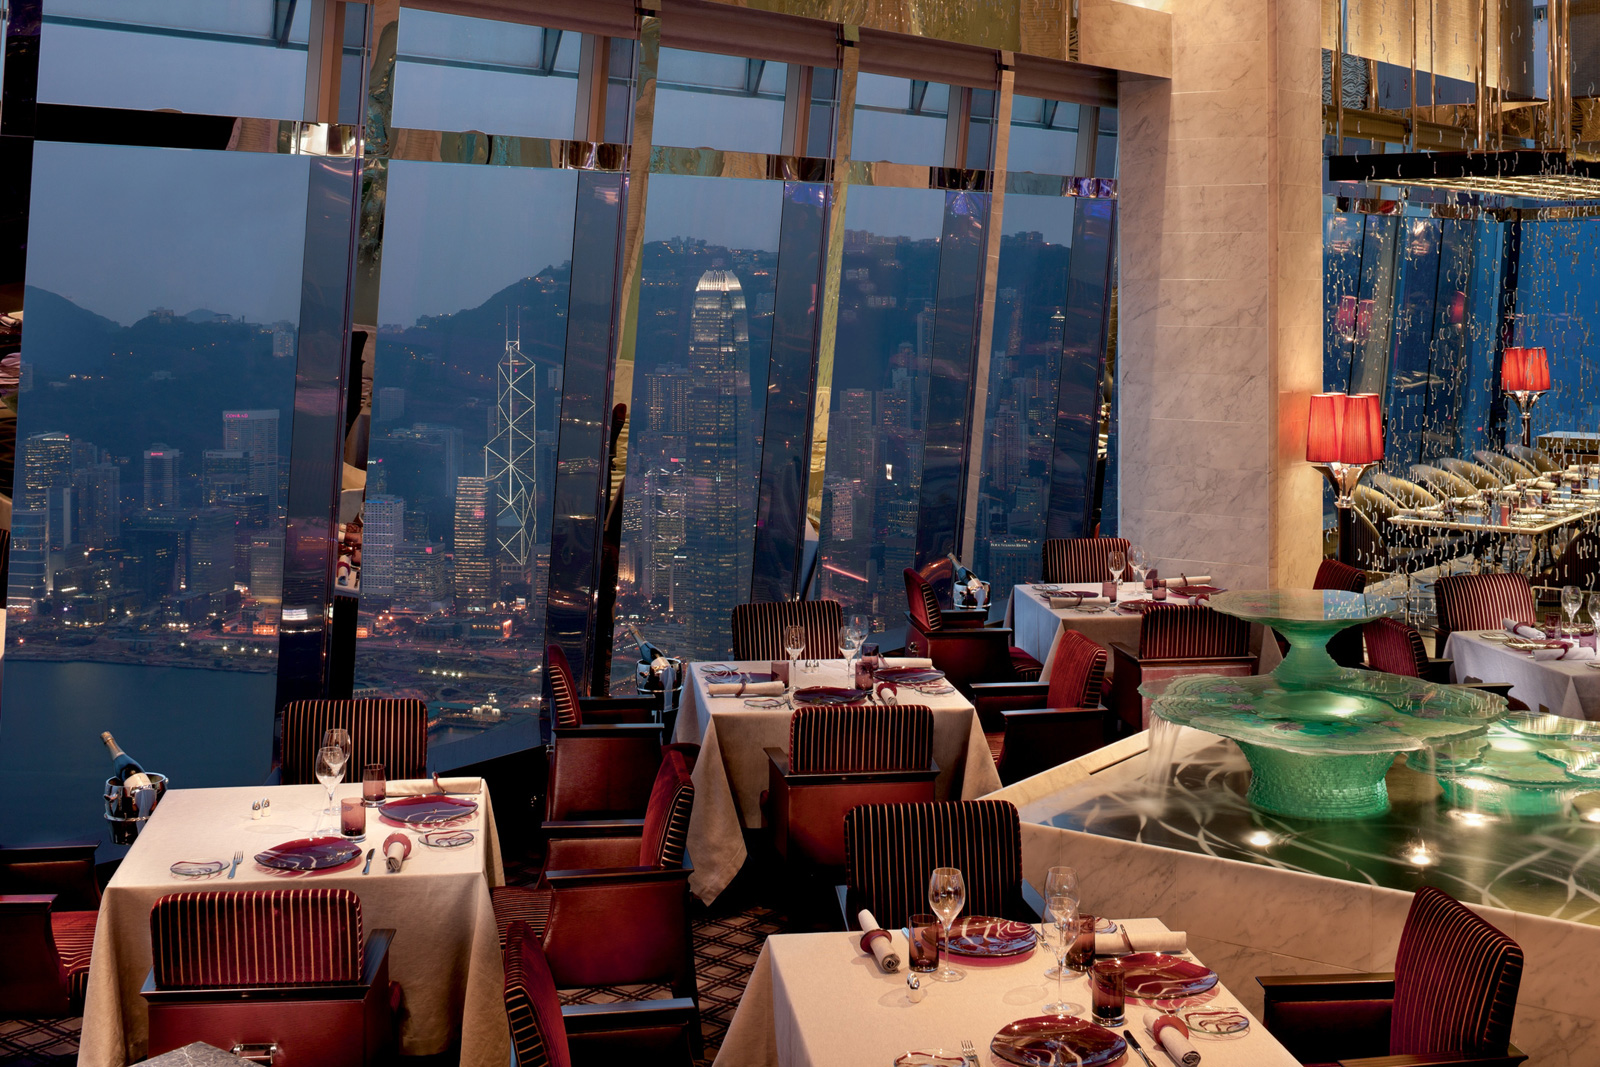 Restaurant with evening view of habor and city at The Ritz-Carlton, Hong Kong